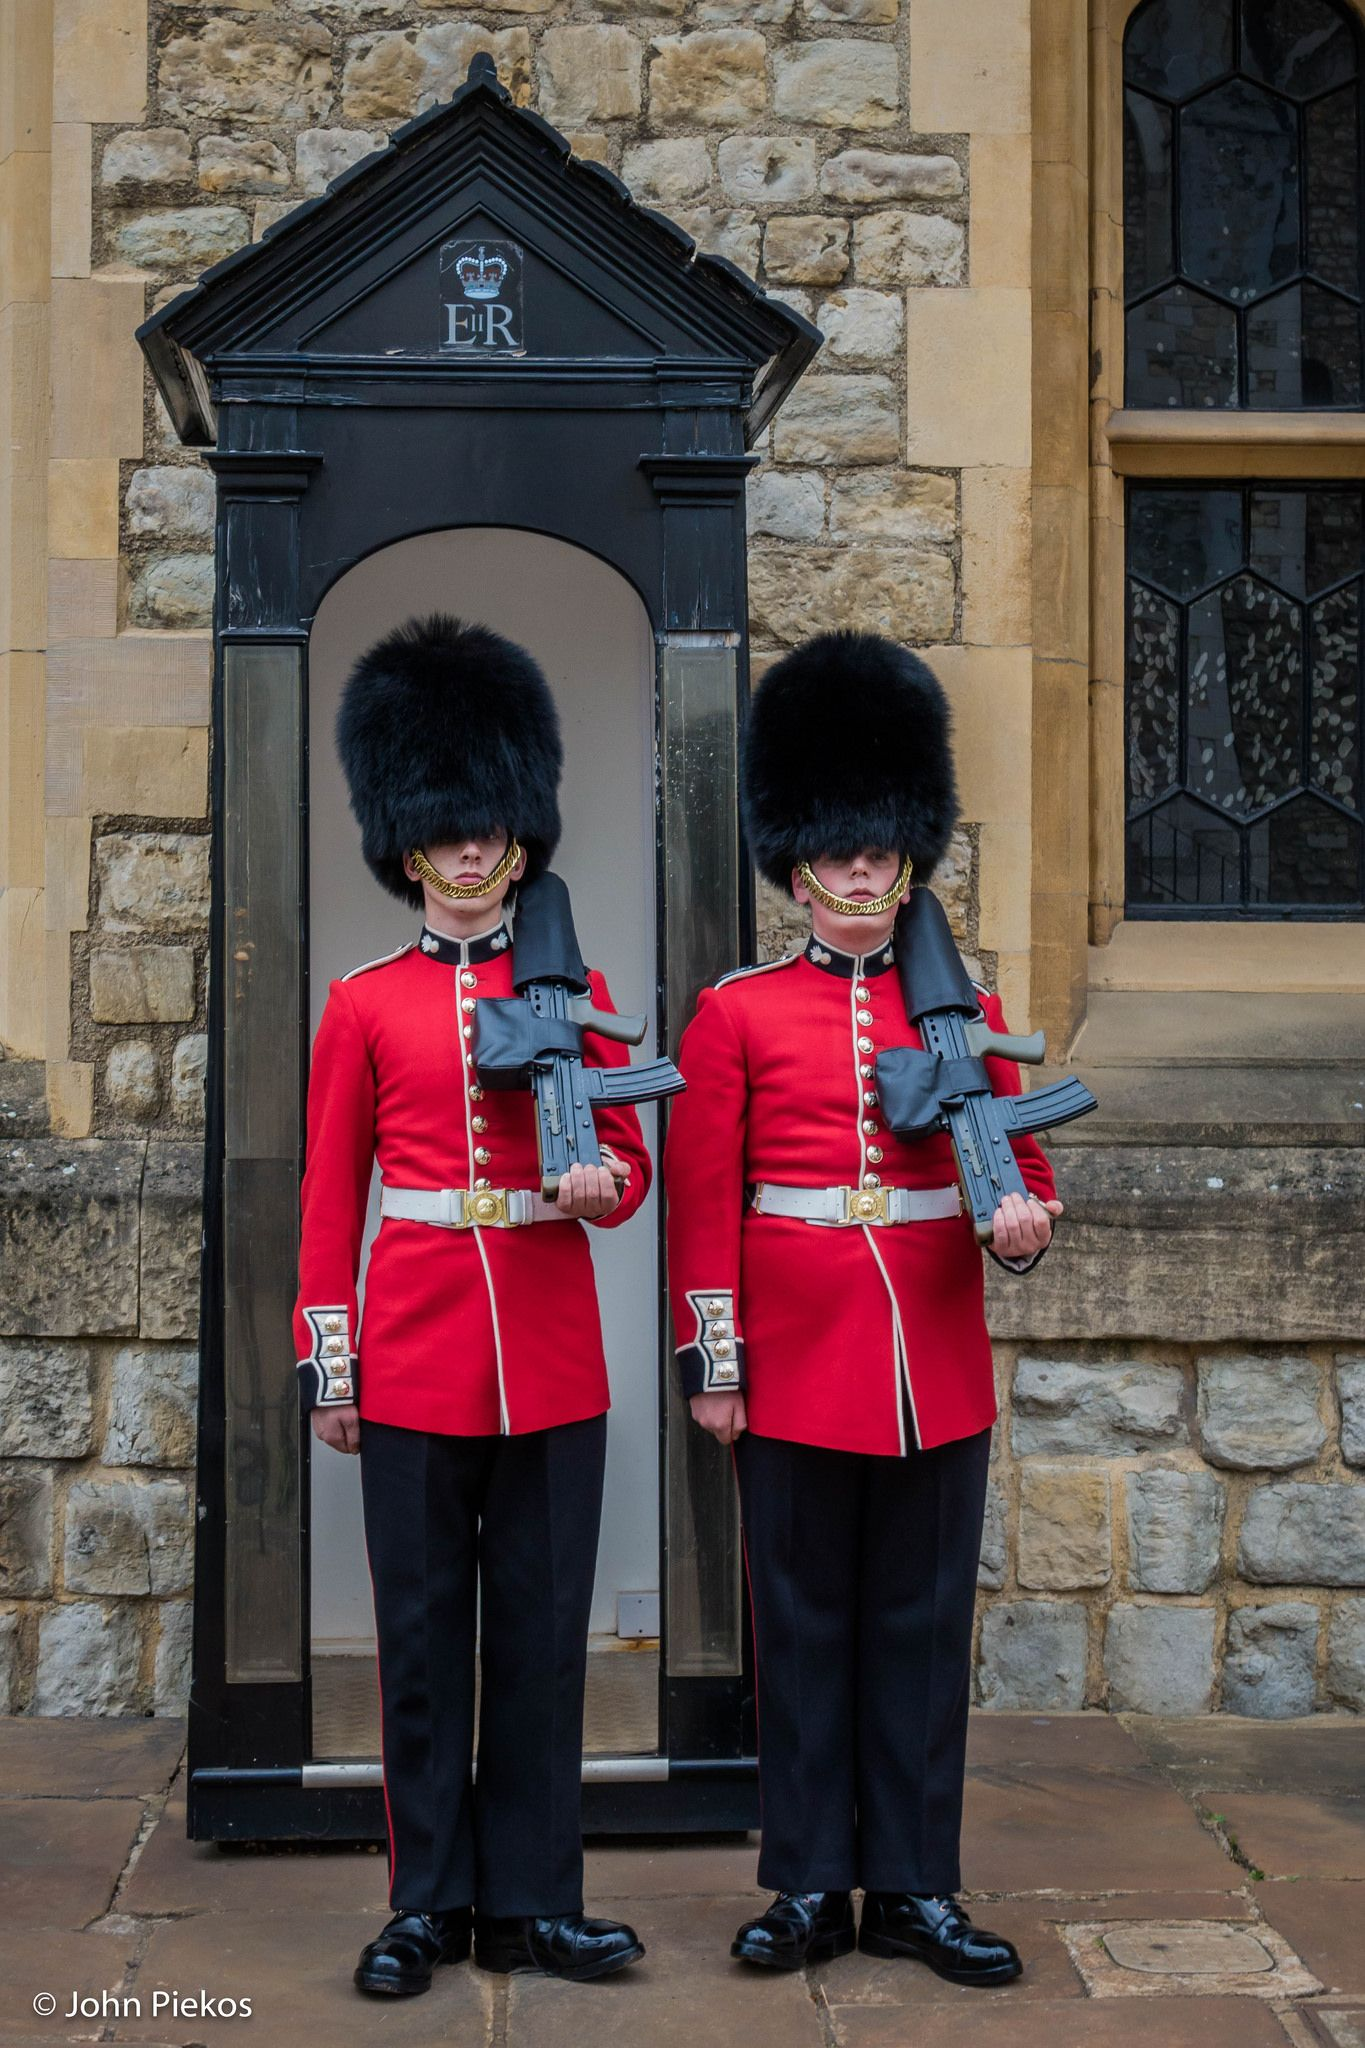 The Queen's Guard at The Tower of London | Queens guard, Tower of london,  Royal guard